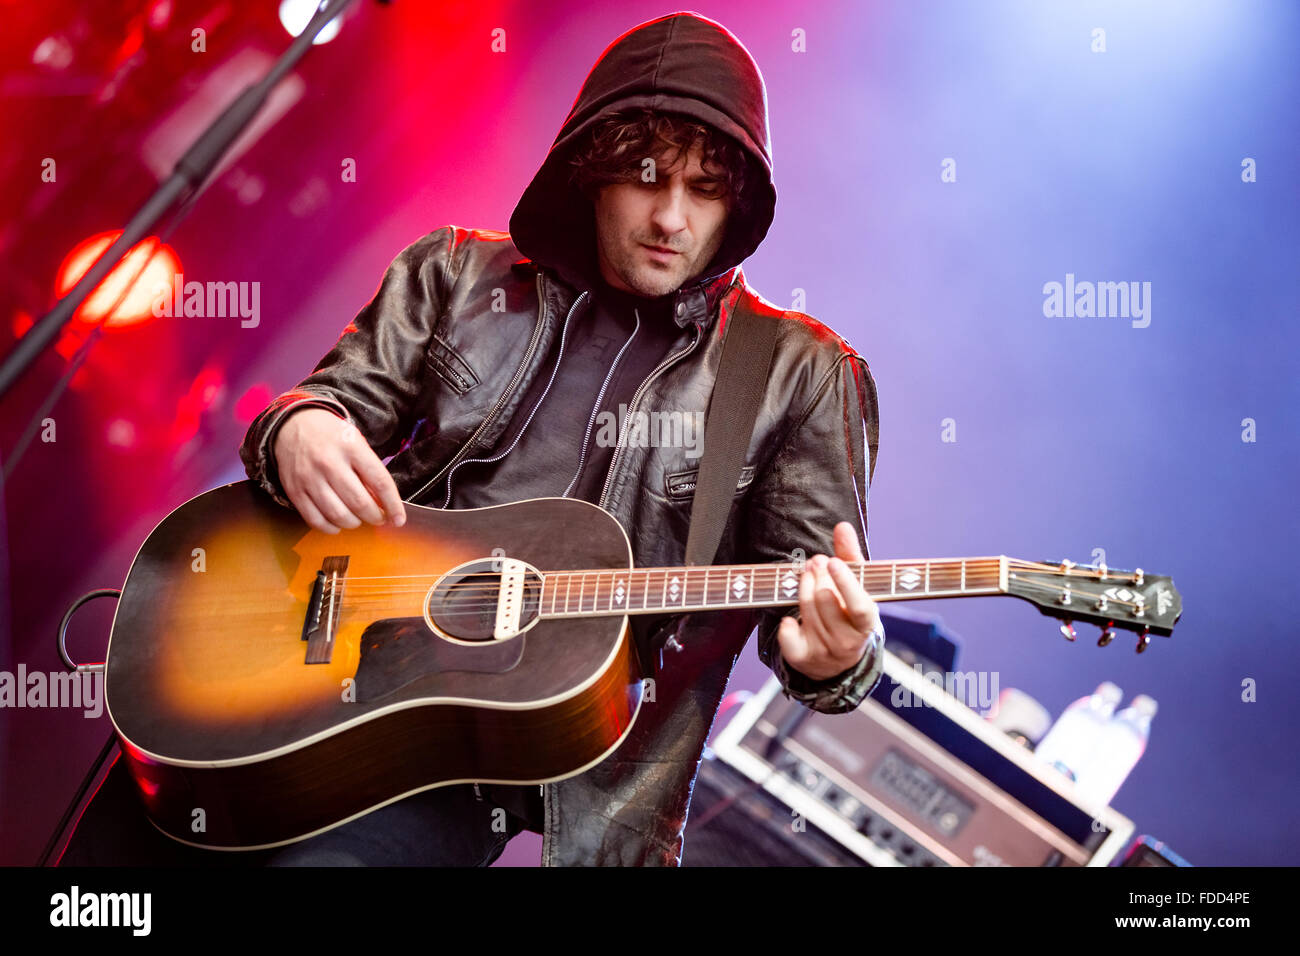 Robert Levon wurde der Black Rebel Motorcycle Club in Squamish Valley Music Festival in BC am 8. August 2015 Stockbild